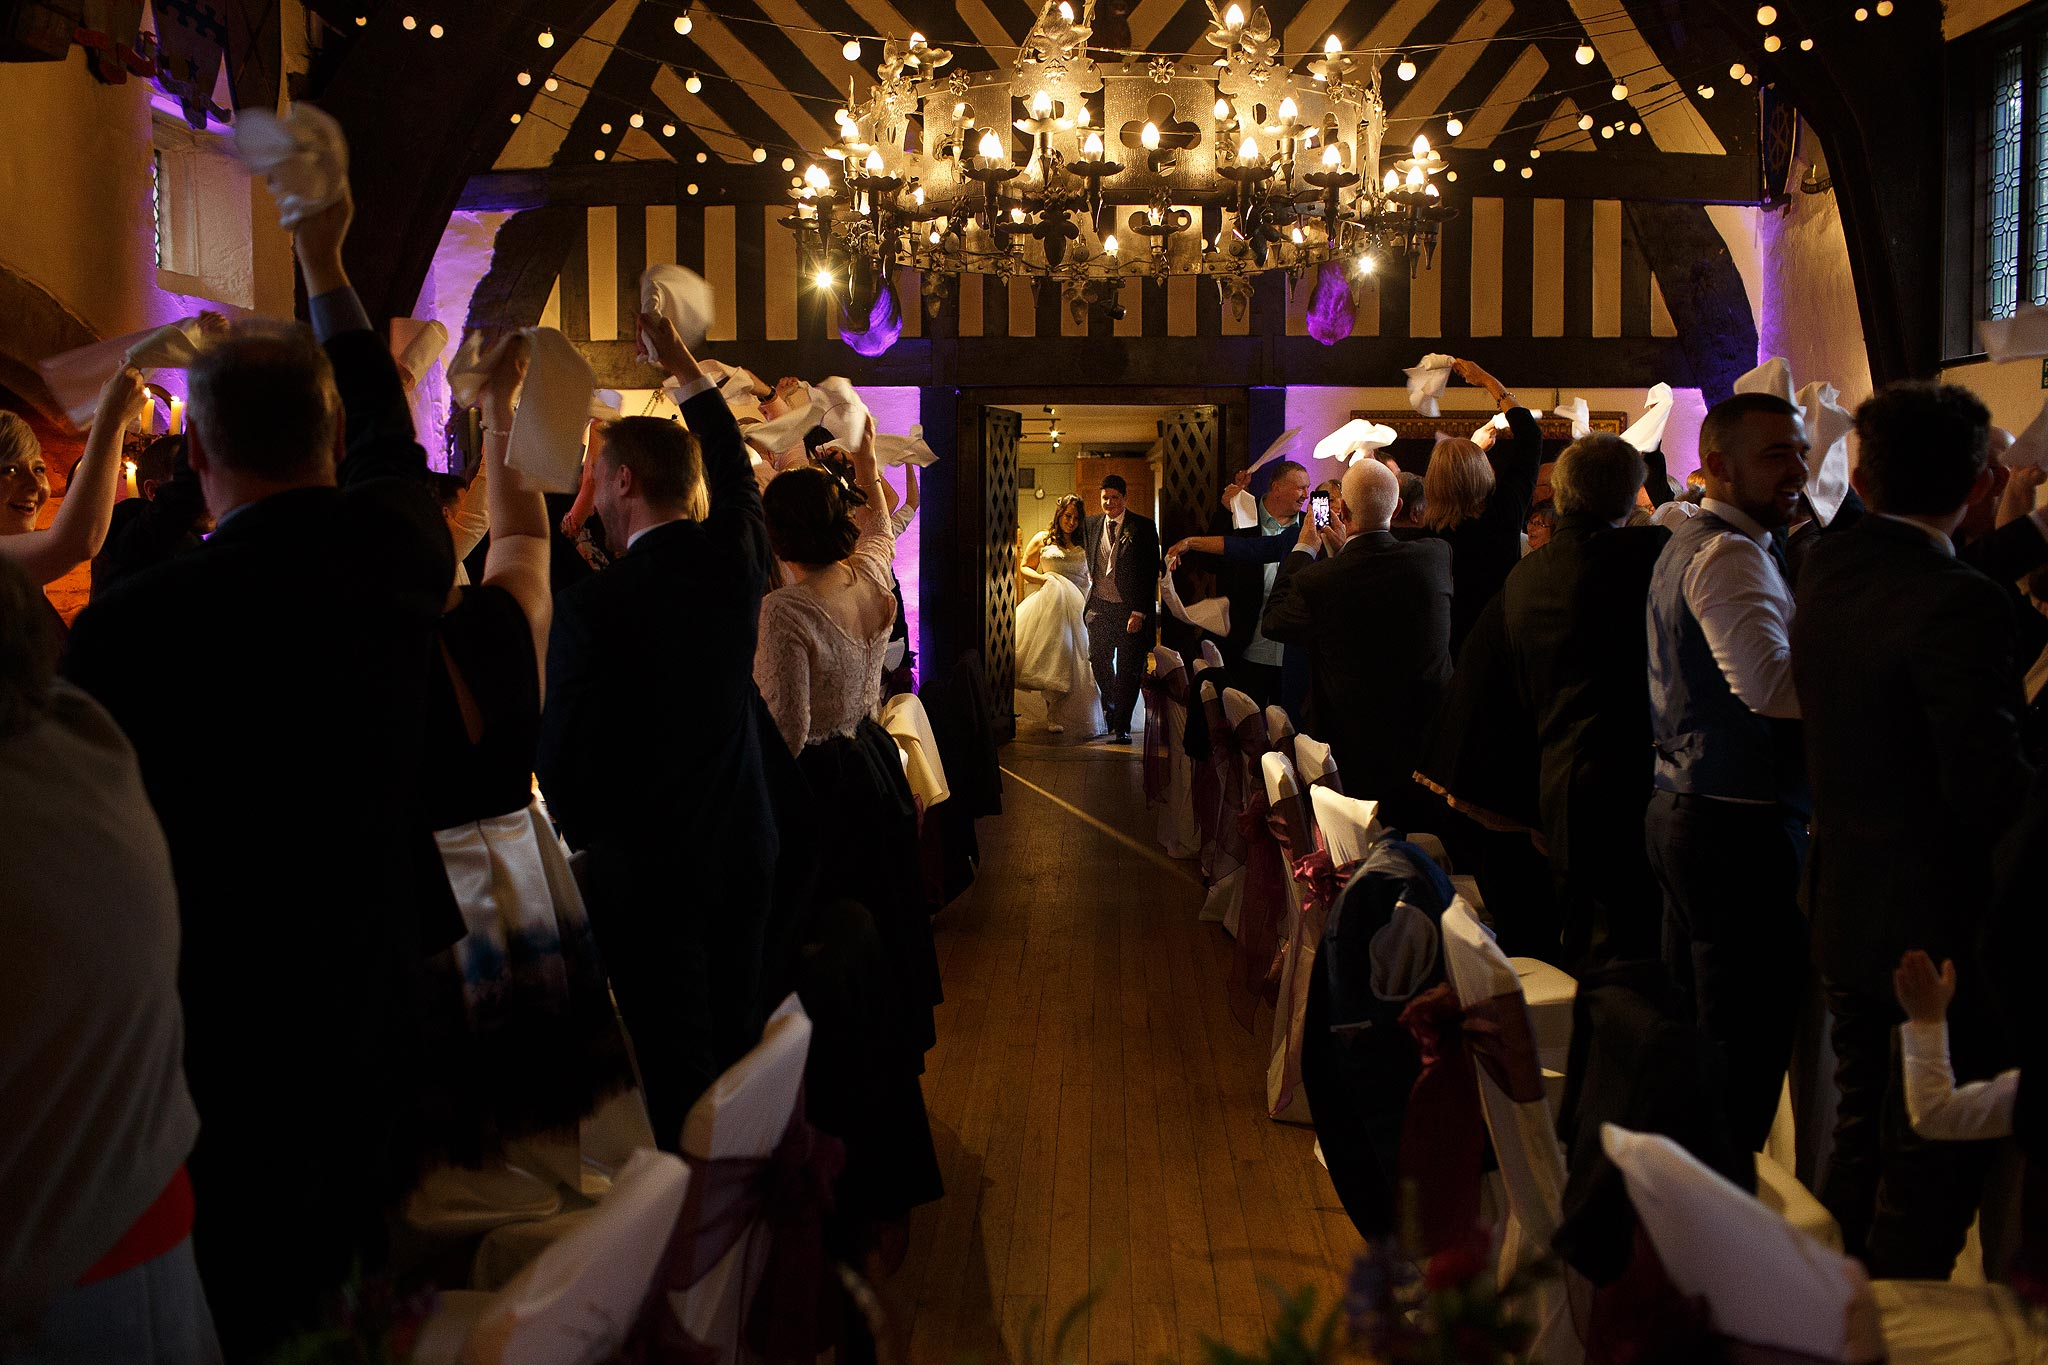 Wedding guests swinging napkins as the bride and groom enter the wedding breakfast at Samlesbury Hall